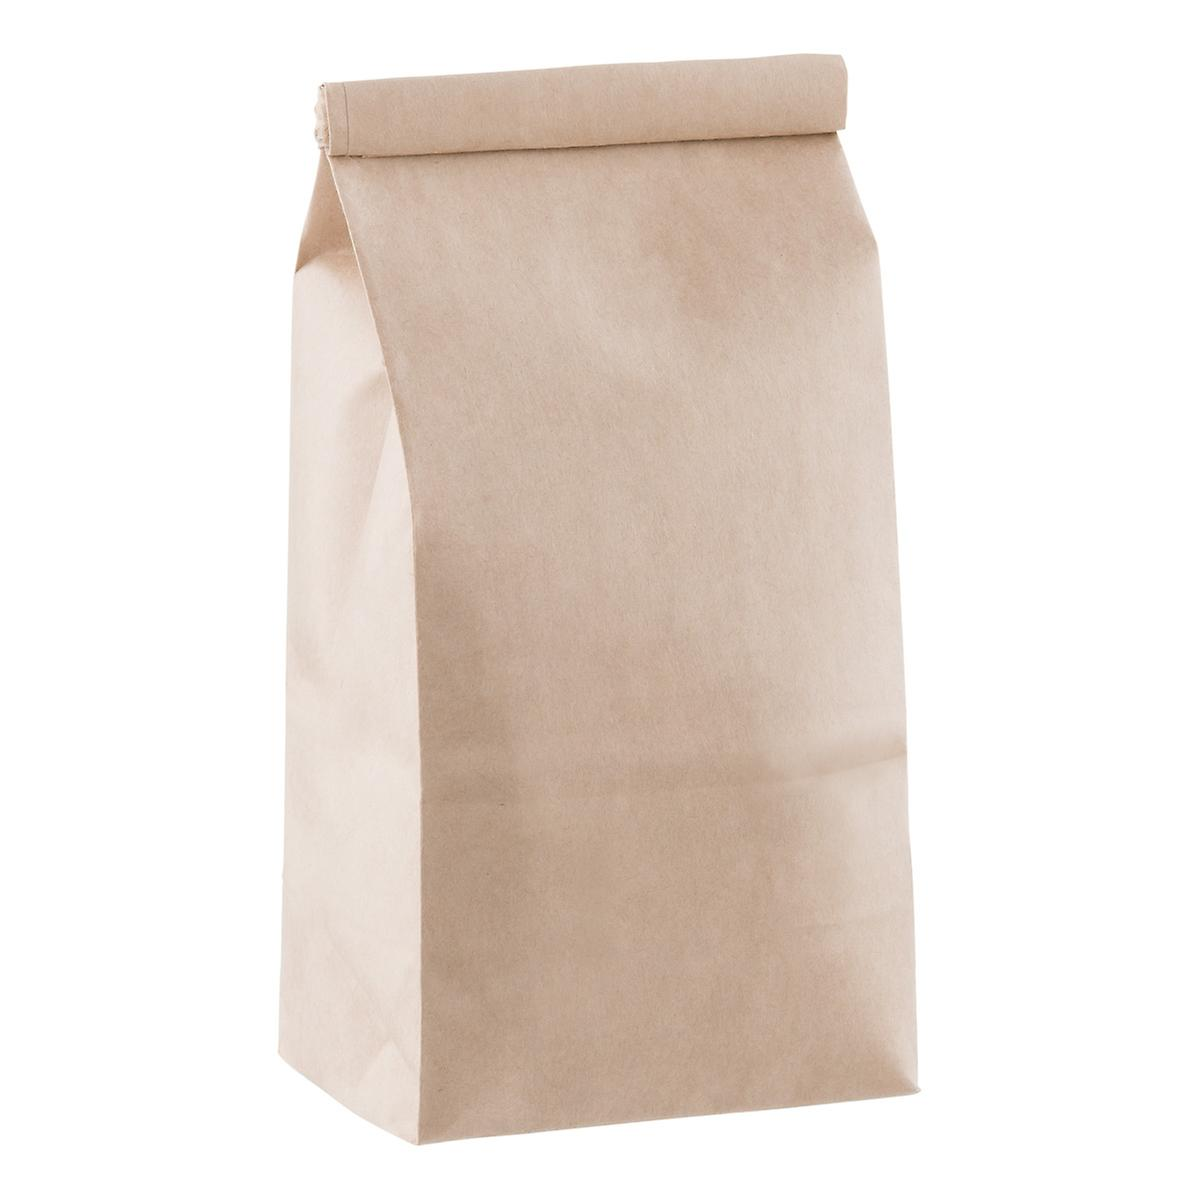 1/2 lb. Kraft Coffee Bag | The Container Store